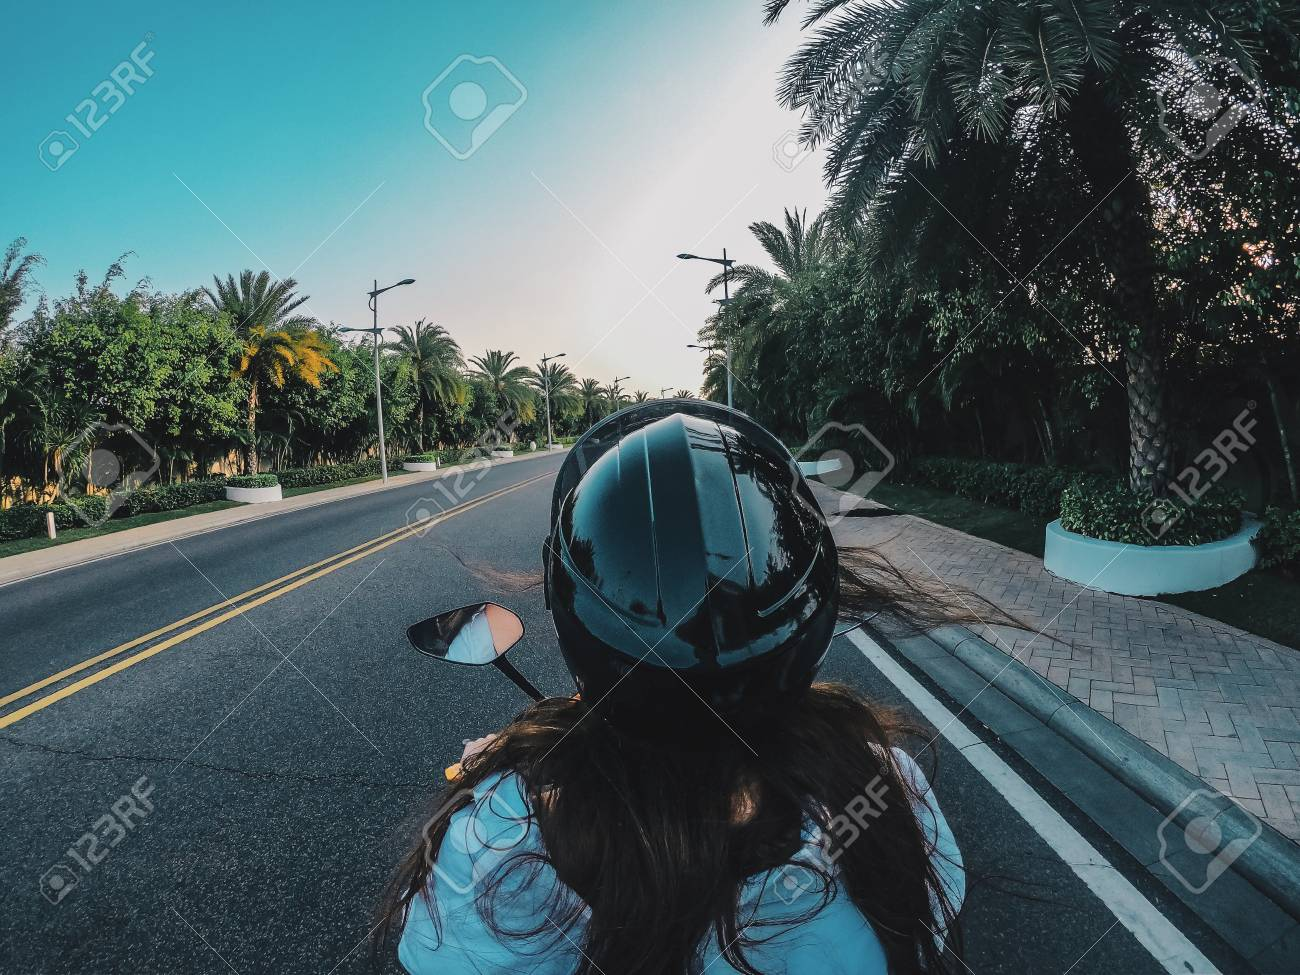 A girl in a black helmet is driving a motorcycle on a flat road in China. Traveler rides next to palm trees, trees grow along the road. - 126733325